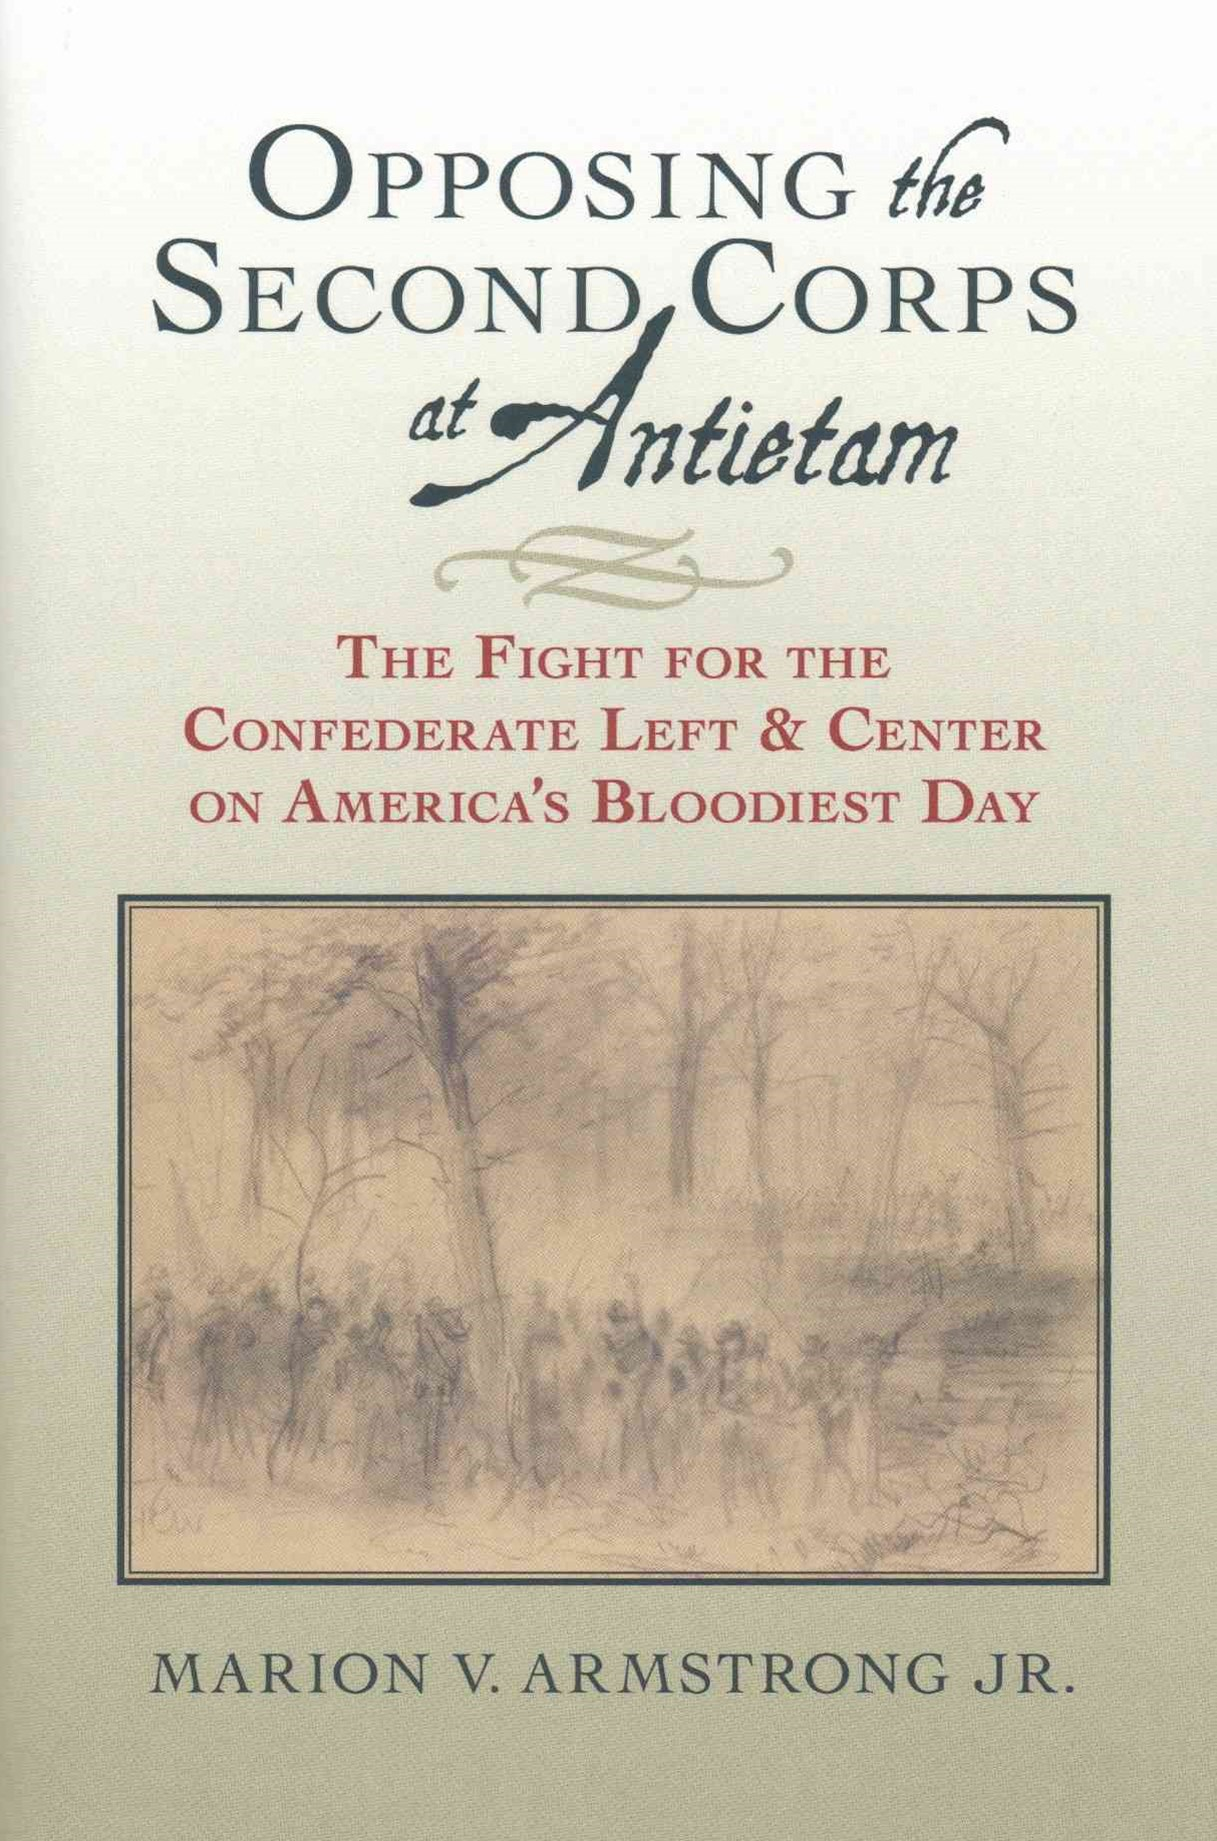 Opposing the Second Corps at Antietam